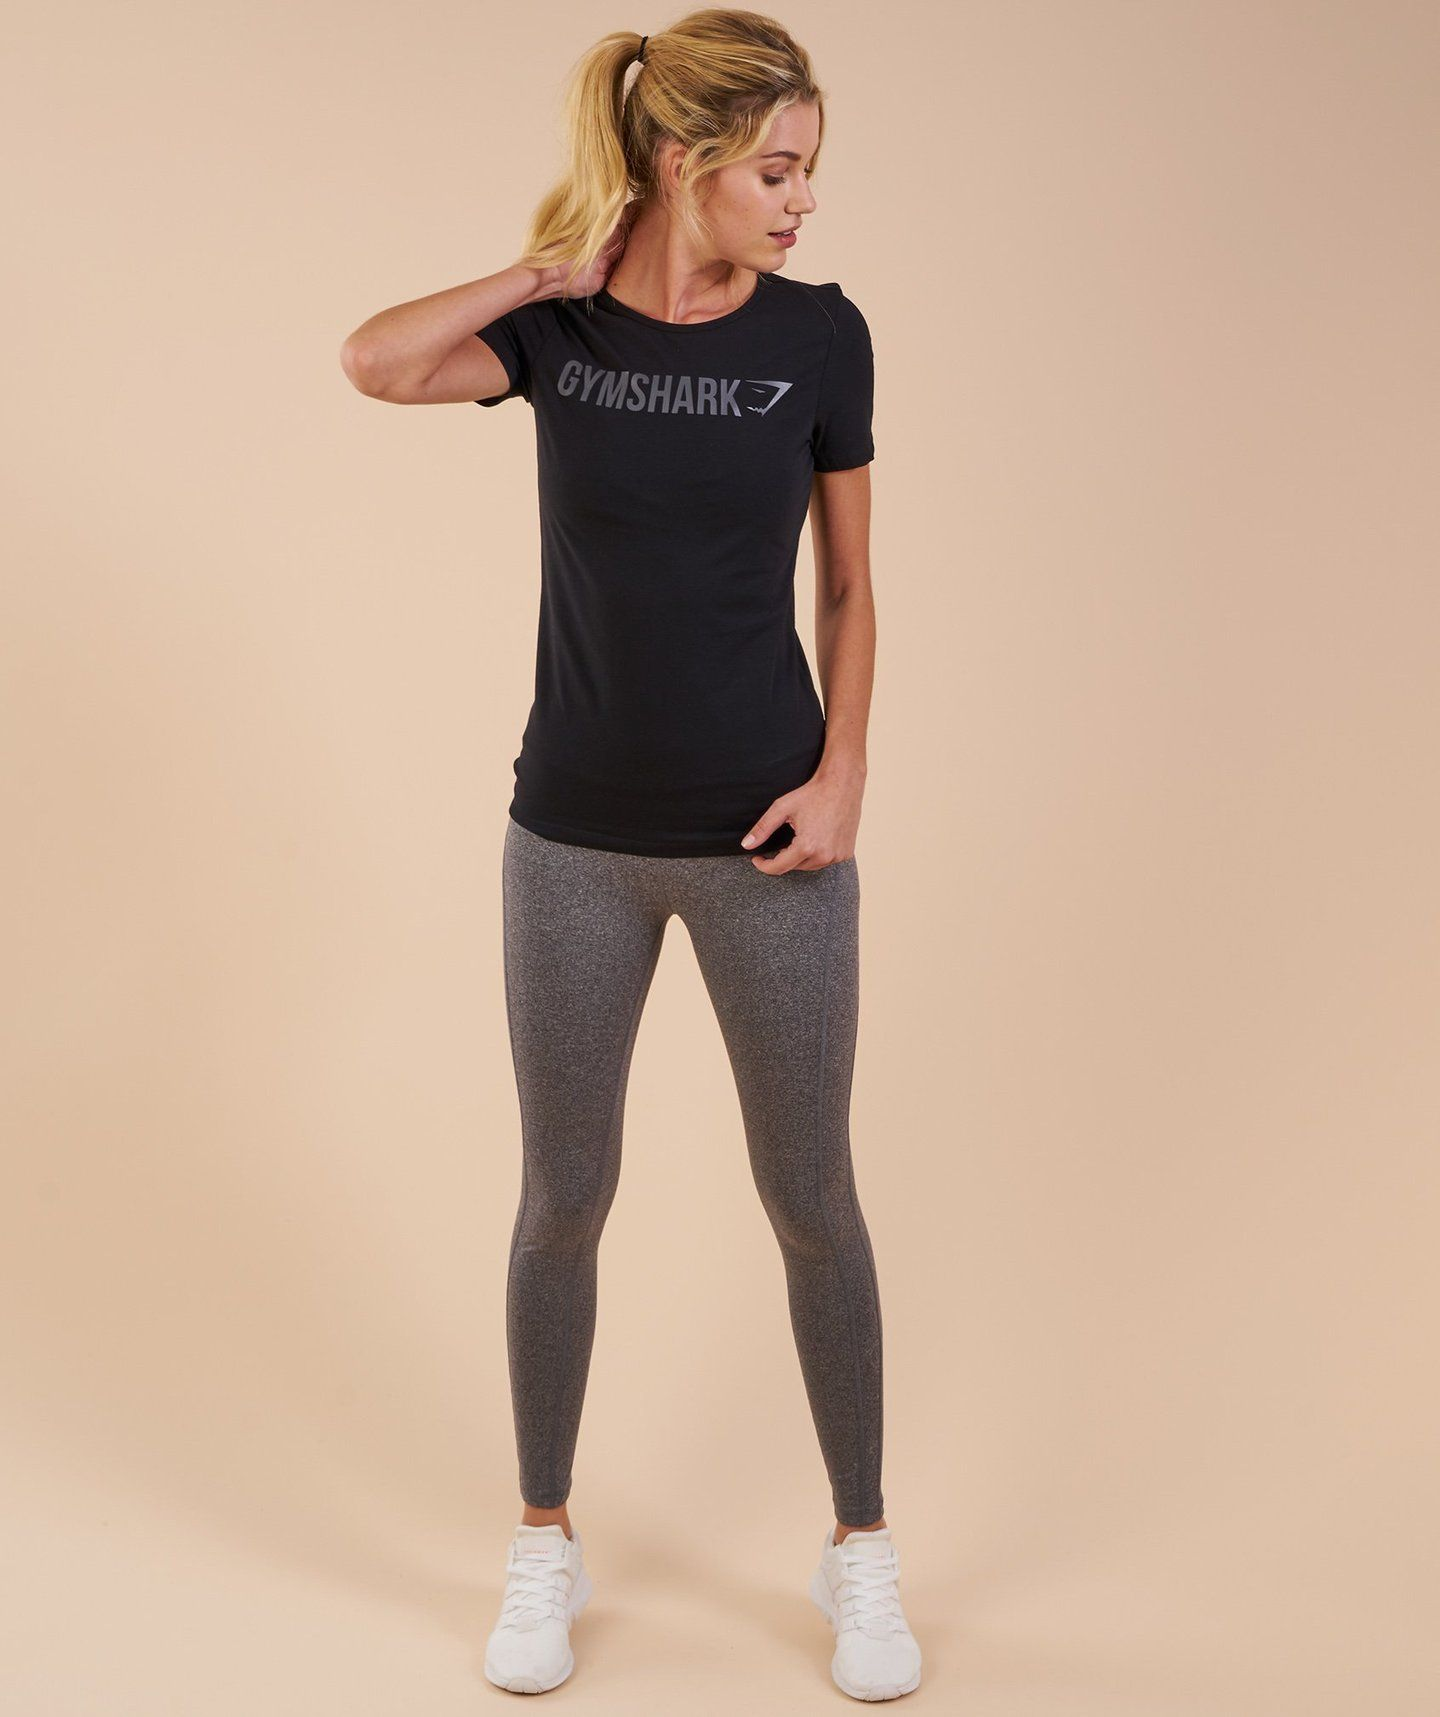 82ddf22c76f Gymshark Women s Apollo T-Shirt - Black 2